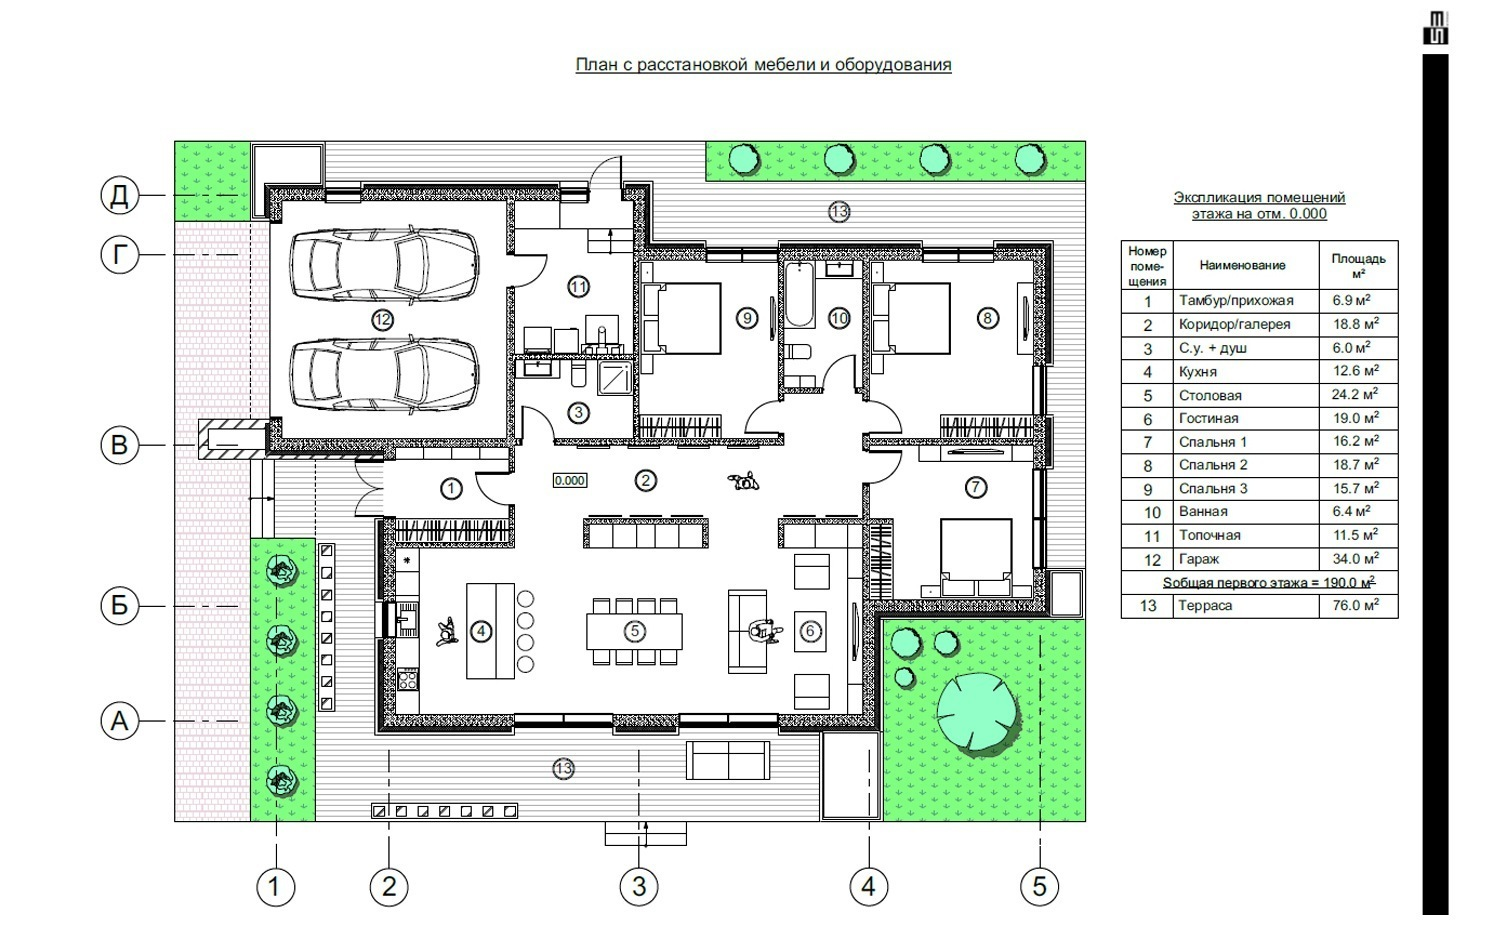 https://m2corp.com.ua/wp-content/uploads/2018/06/olleg-house-plan.jpg